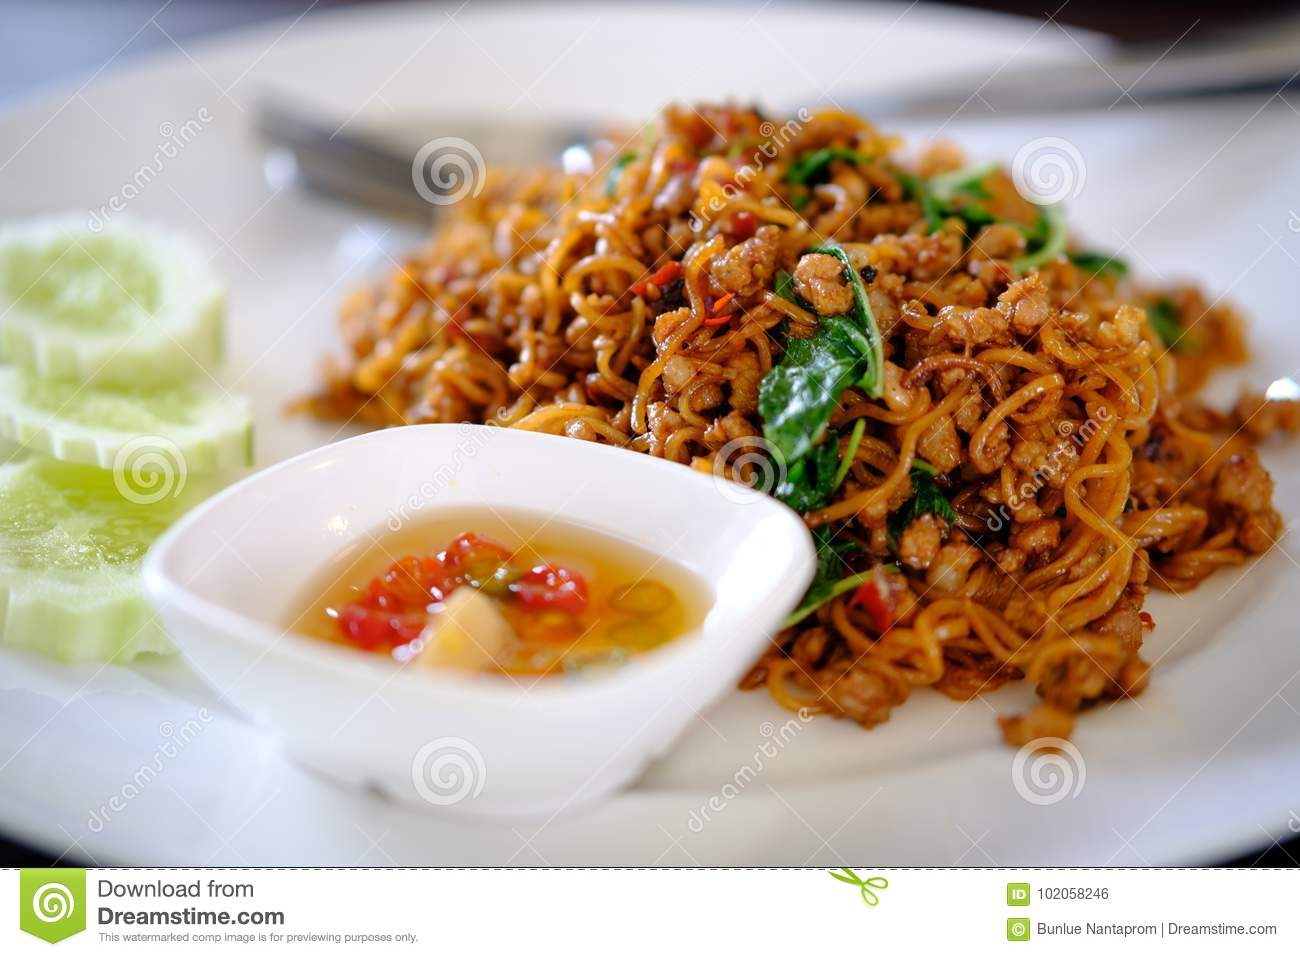 Hot And Spicy Red Noodle Ramen And Pork Fried Basil On White